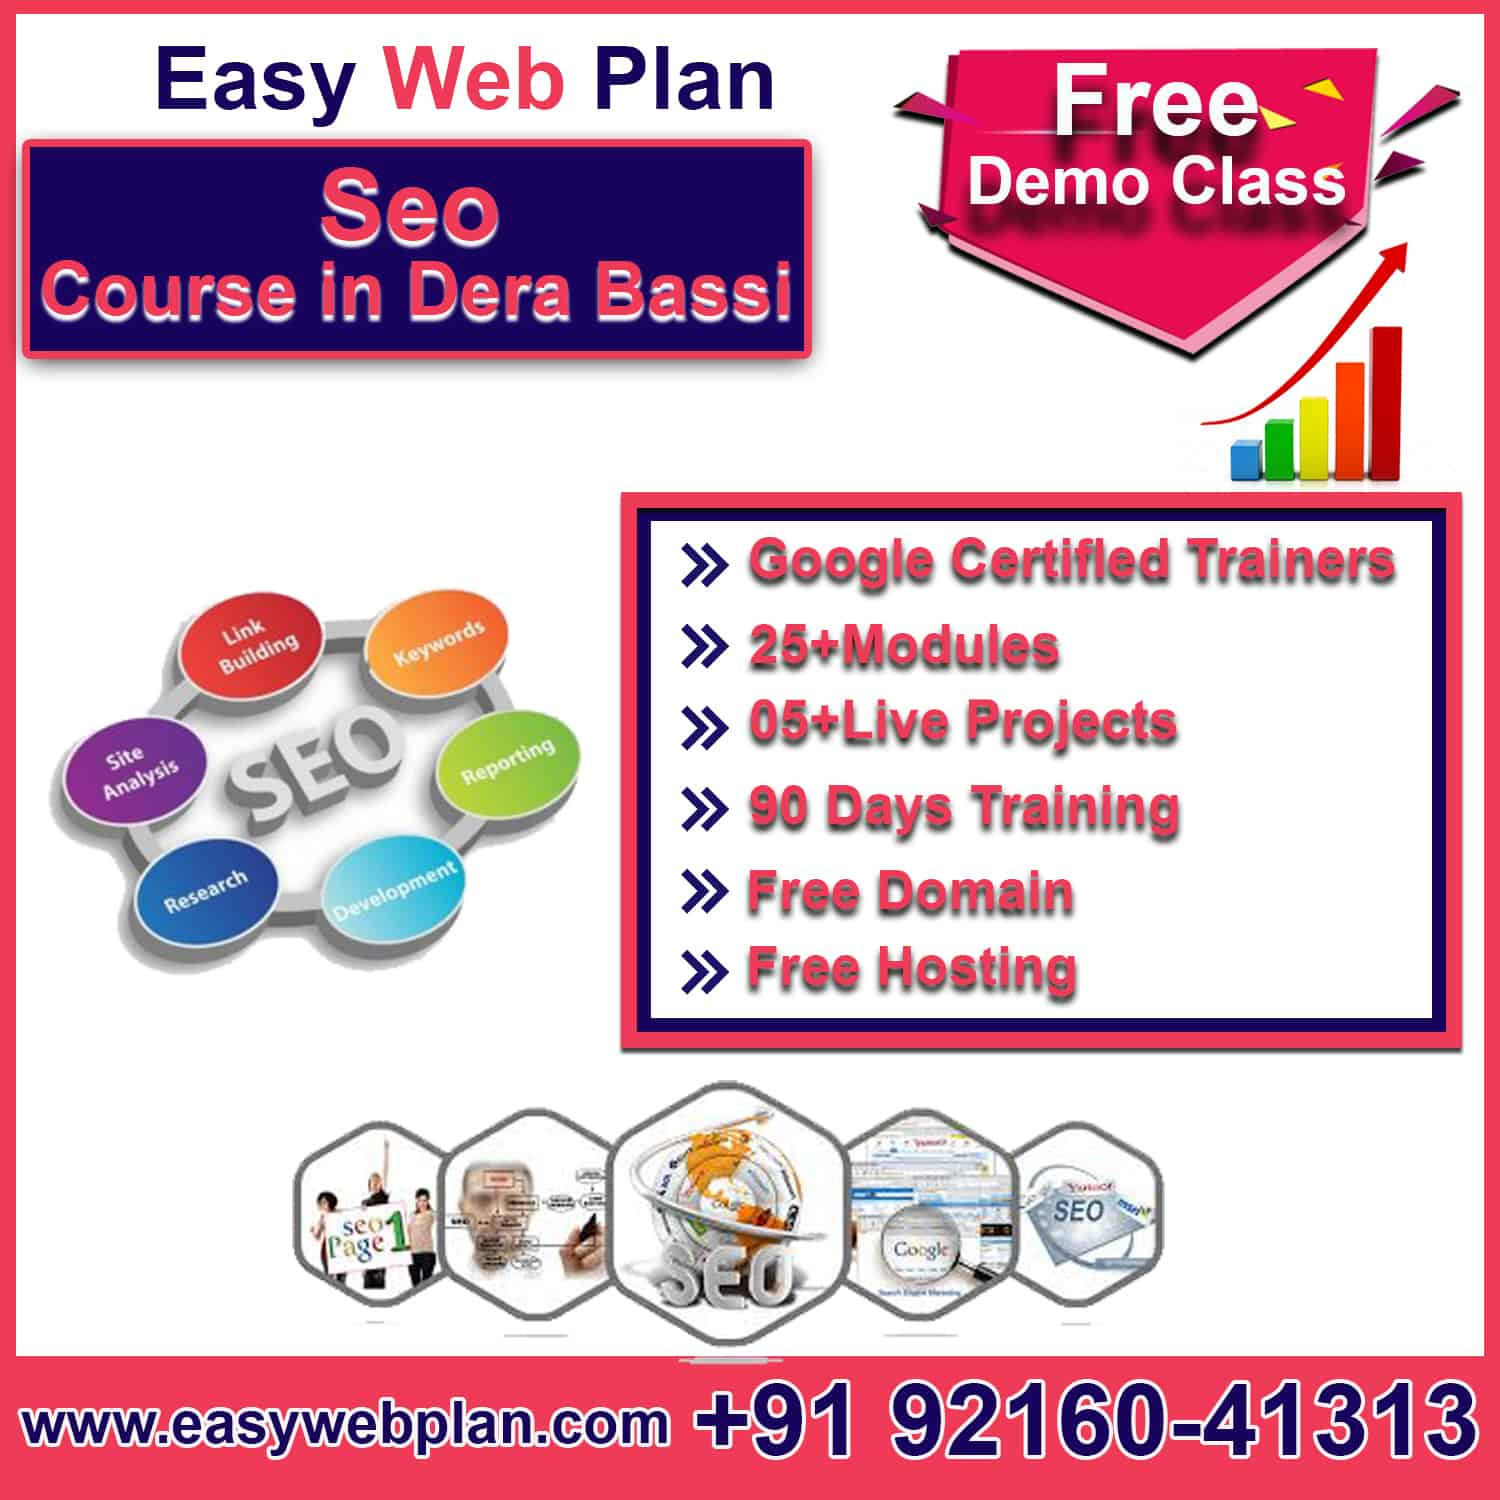 SEO Course in Derabassi